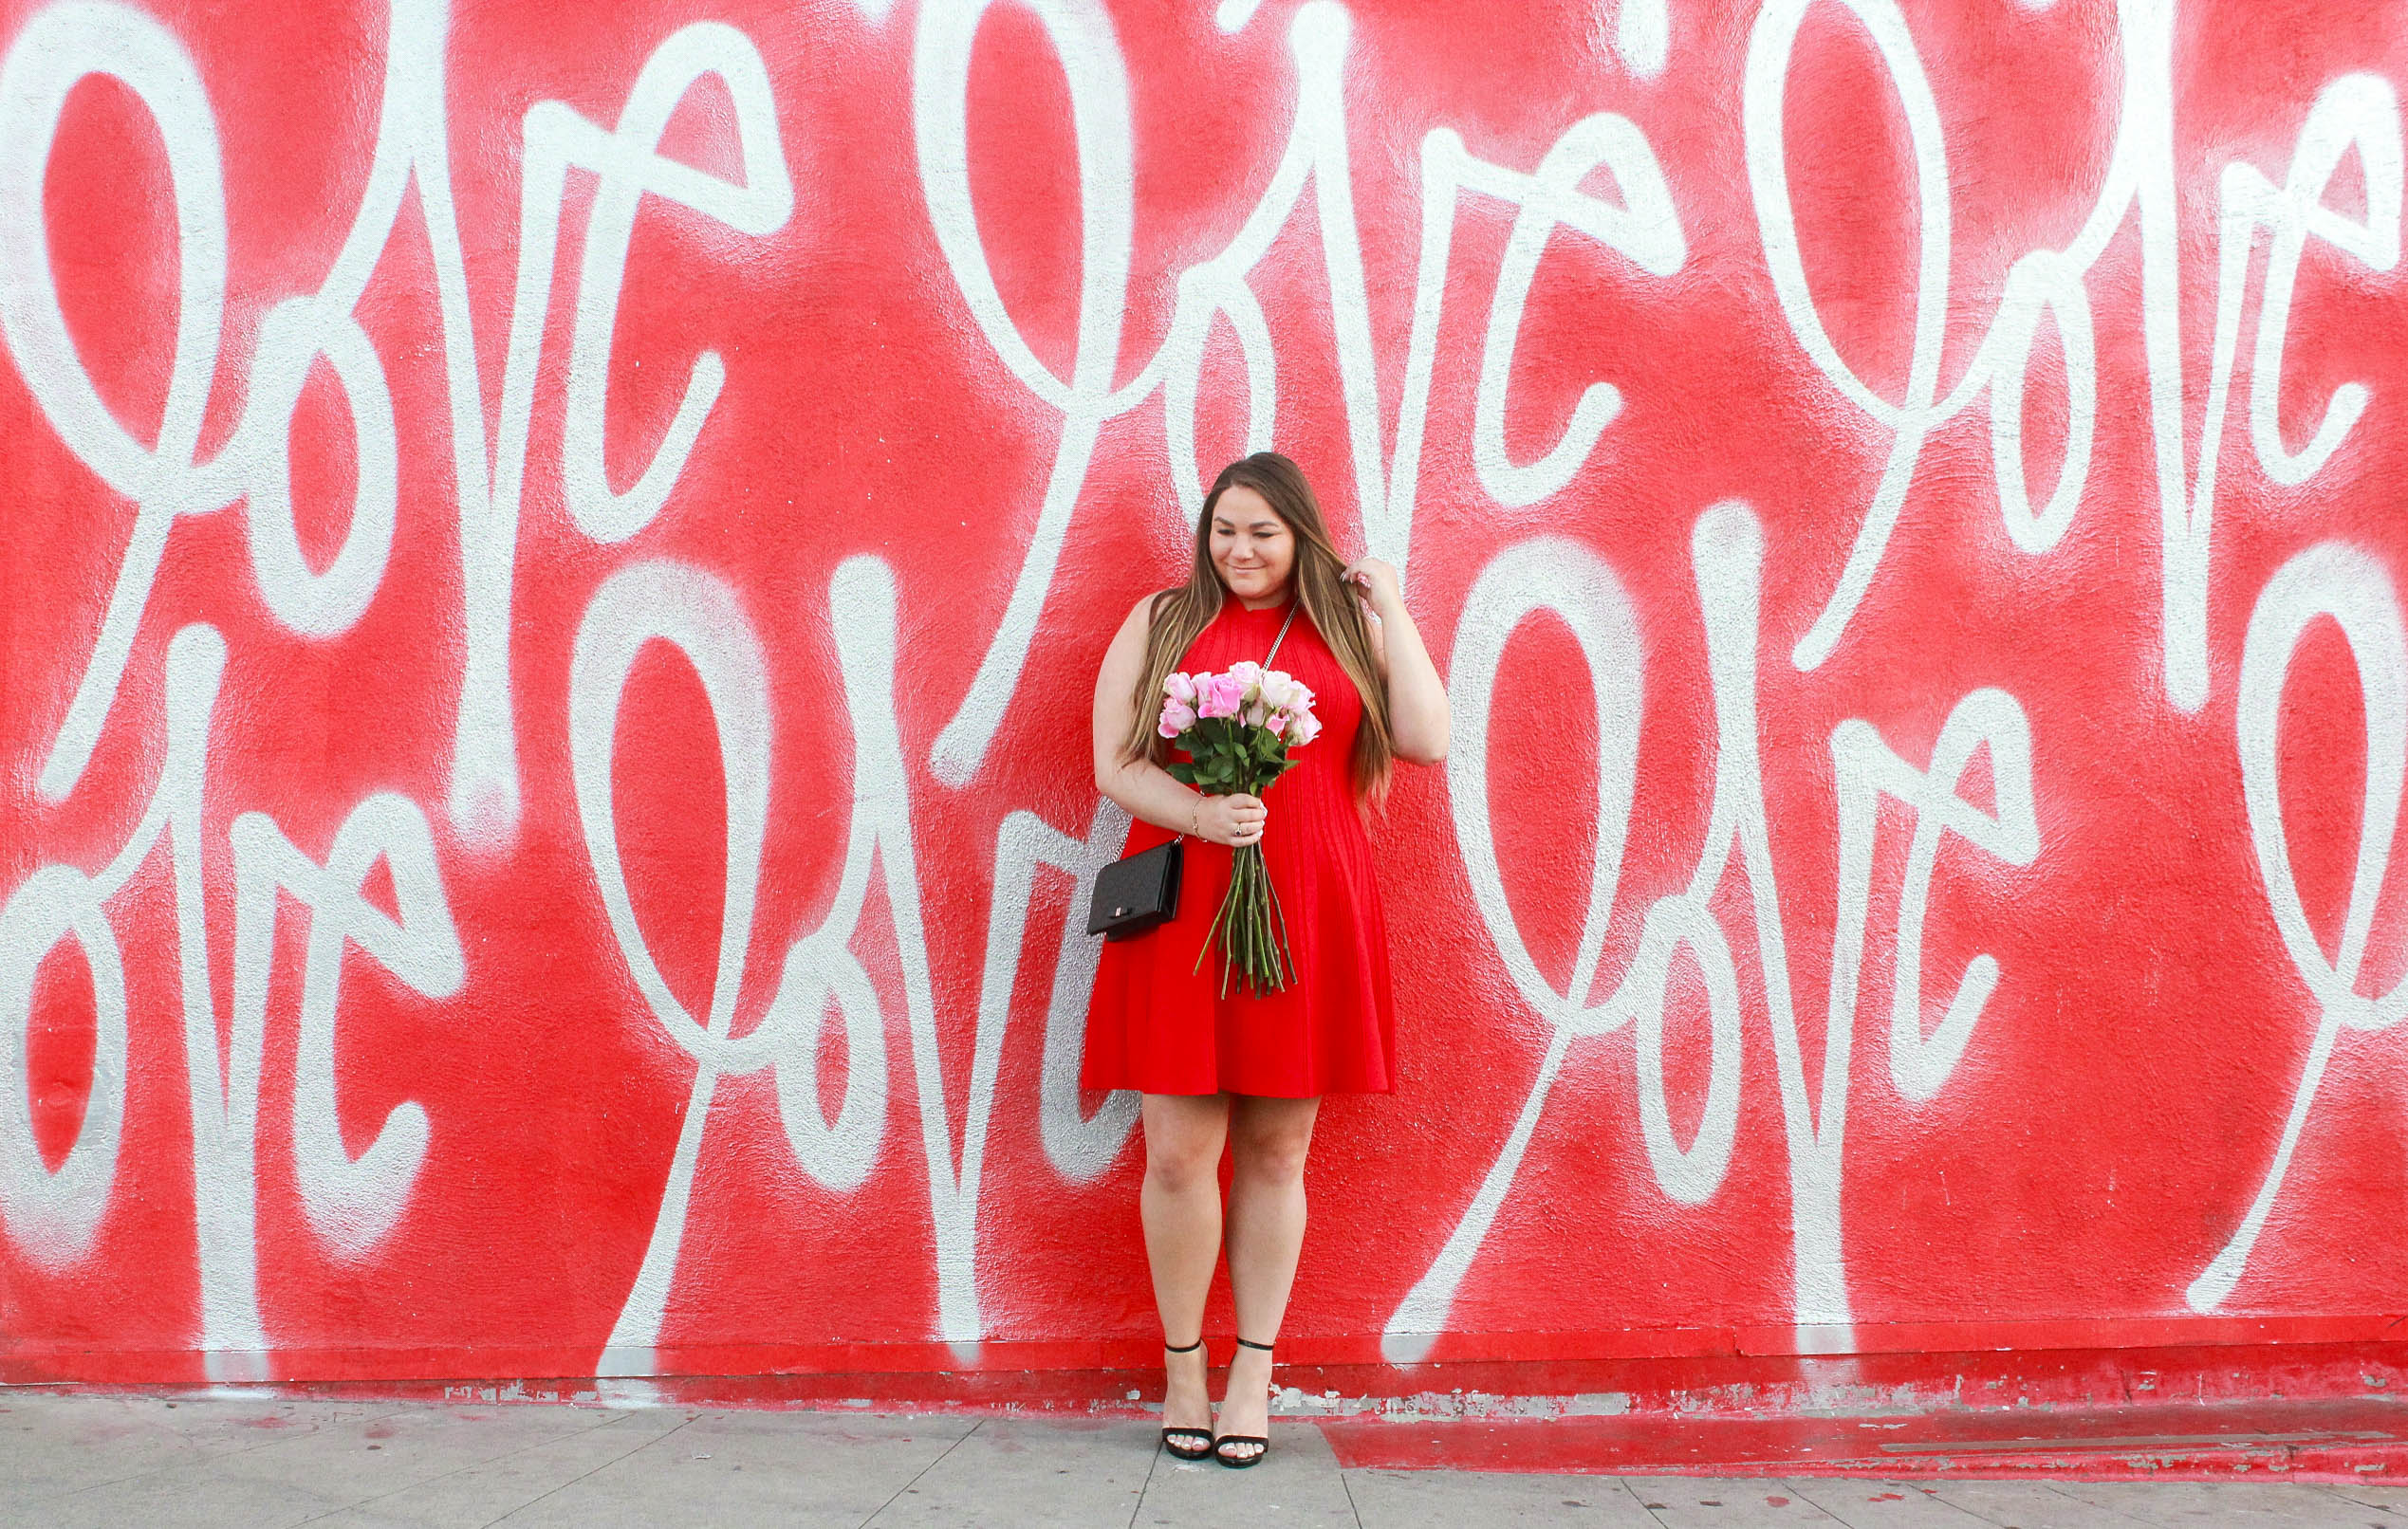 missyonmadison, missyonmadison instagram, melissa tierney, melissa tierney instagram, valentines day, valentines day 2018, valentines day date night, date night outfit, date night look, valentines day 2018 look, valentines day 2018 outfit, date night style, date night look, what to wear for valentines day, little red dress, red fit and flare dress, red sleeveless dress, black ankle strap heels, black ankle strap sandals, gucci mini bag, black gucci mini bag, fashion blogger, style blogger, style blog, date night looks, fresh roses, love wall culver city, love wall, love wall LA,